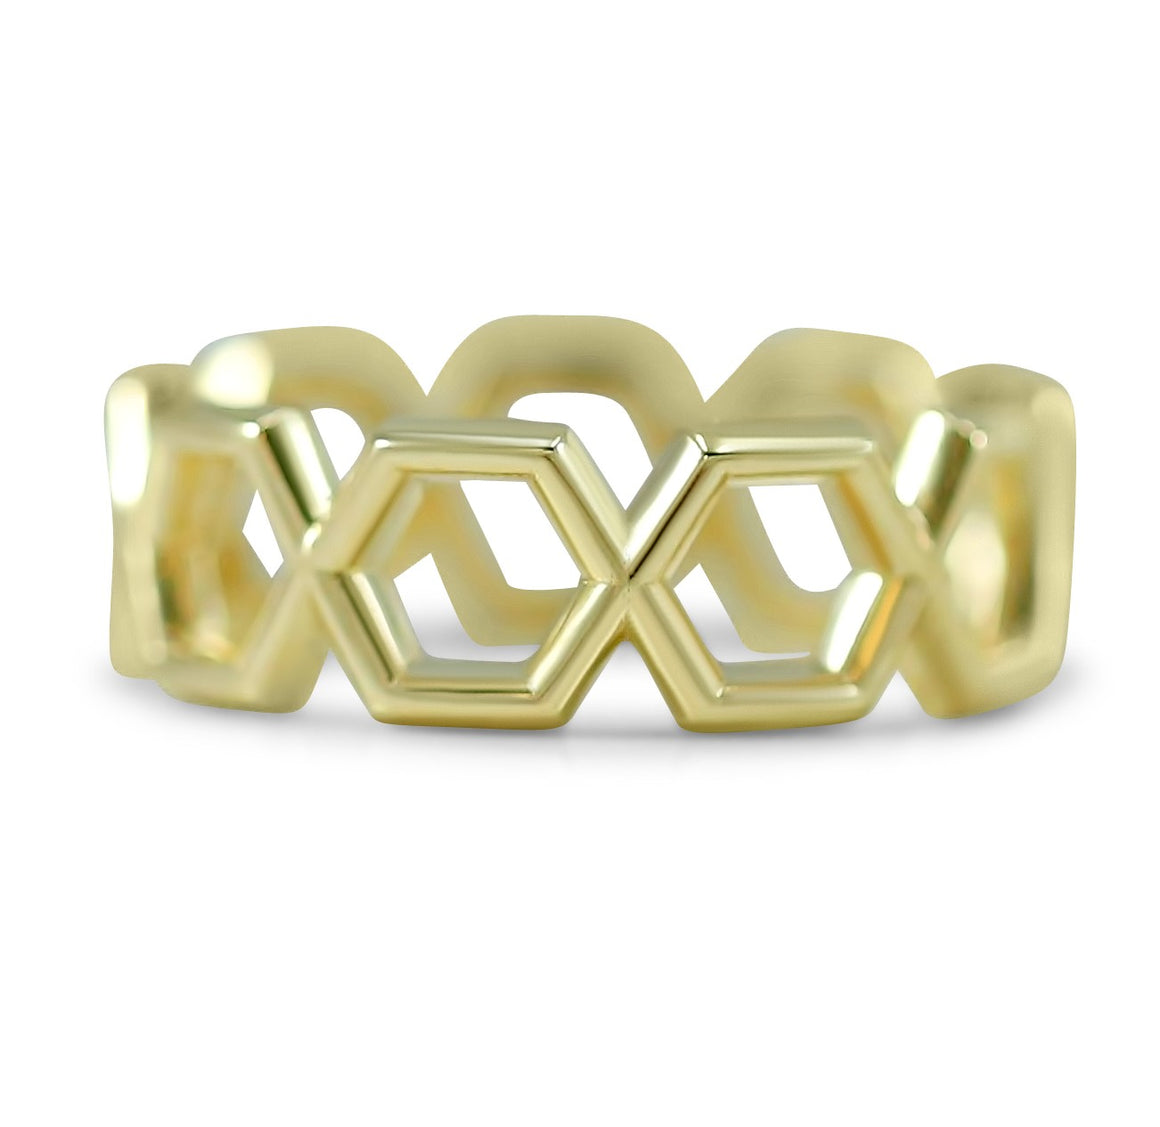 14k yellow, rose or white gold geometric everyday wide right hand ring under $1,000